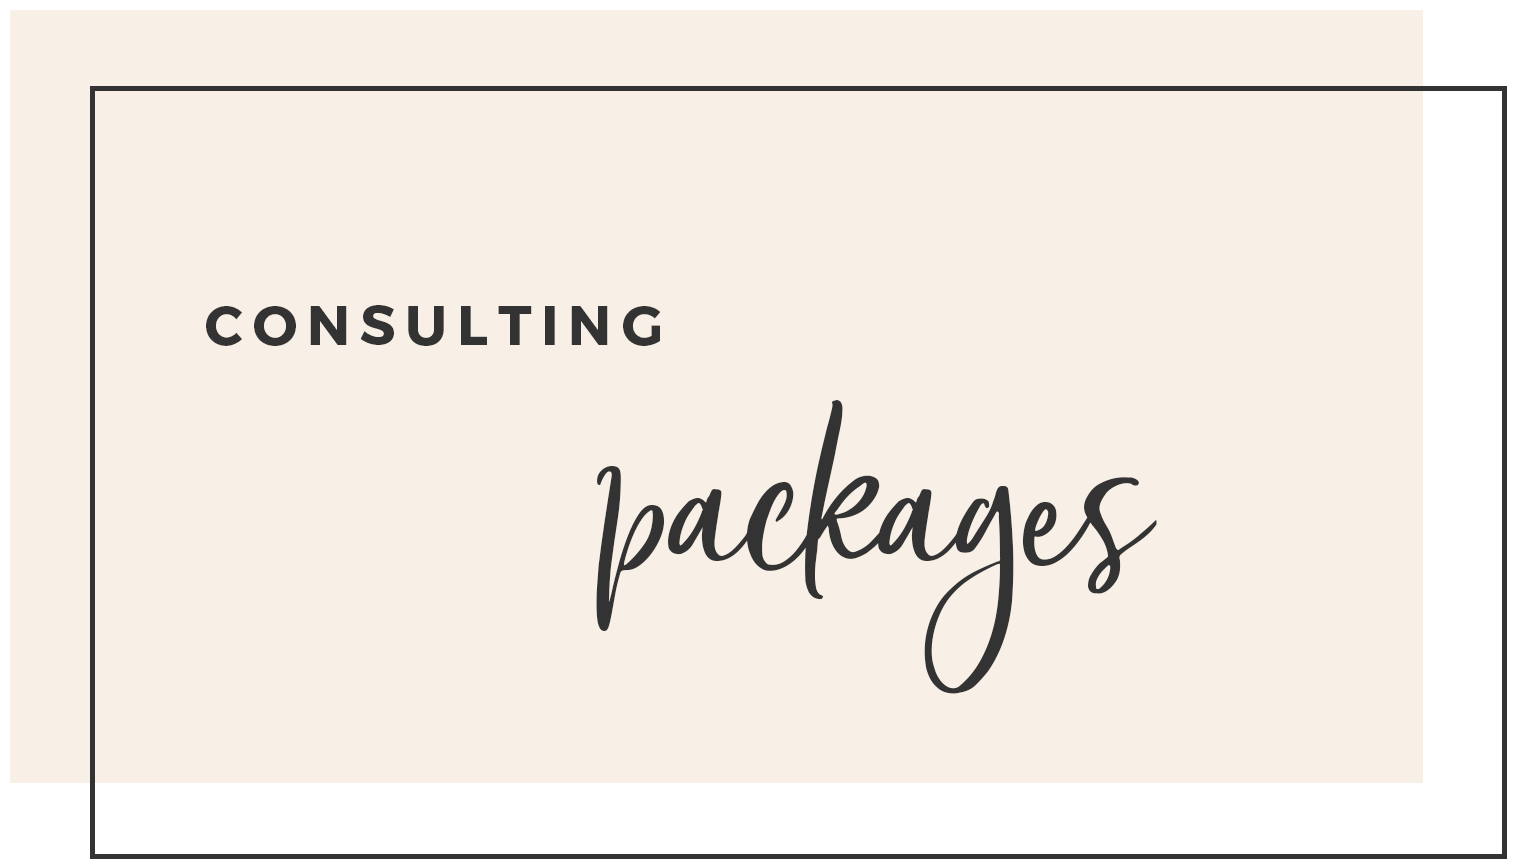 Consulting Packages